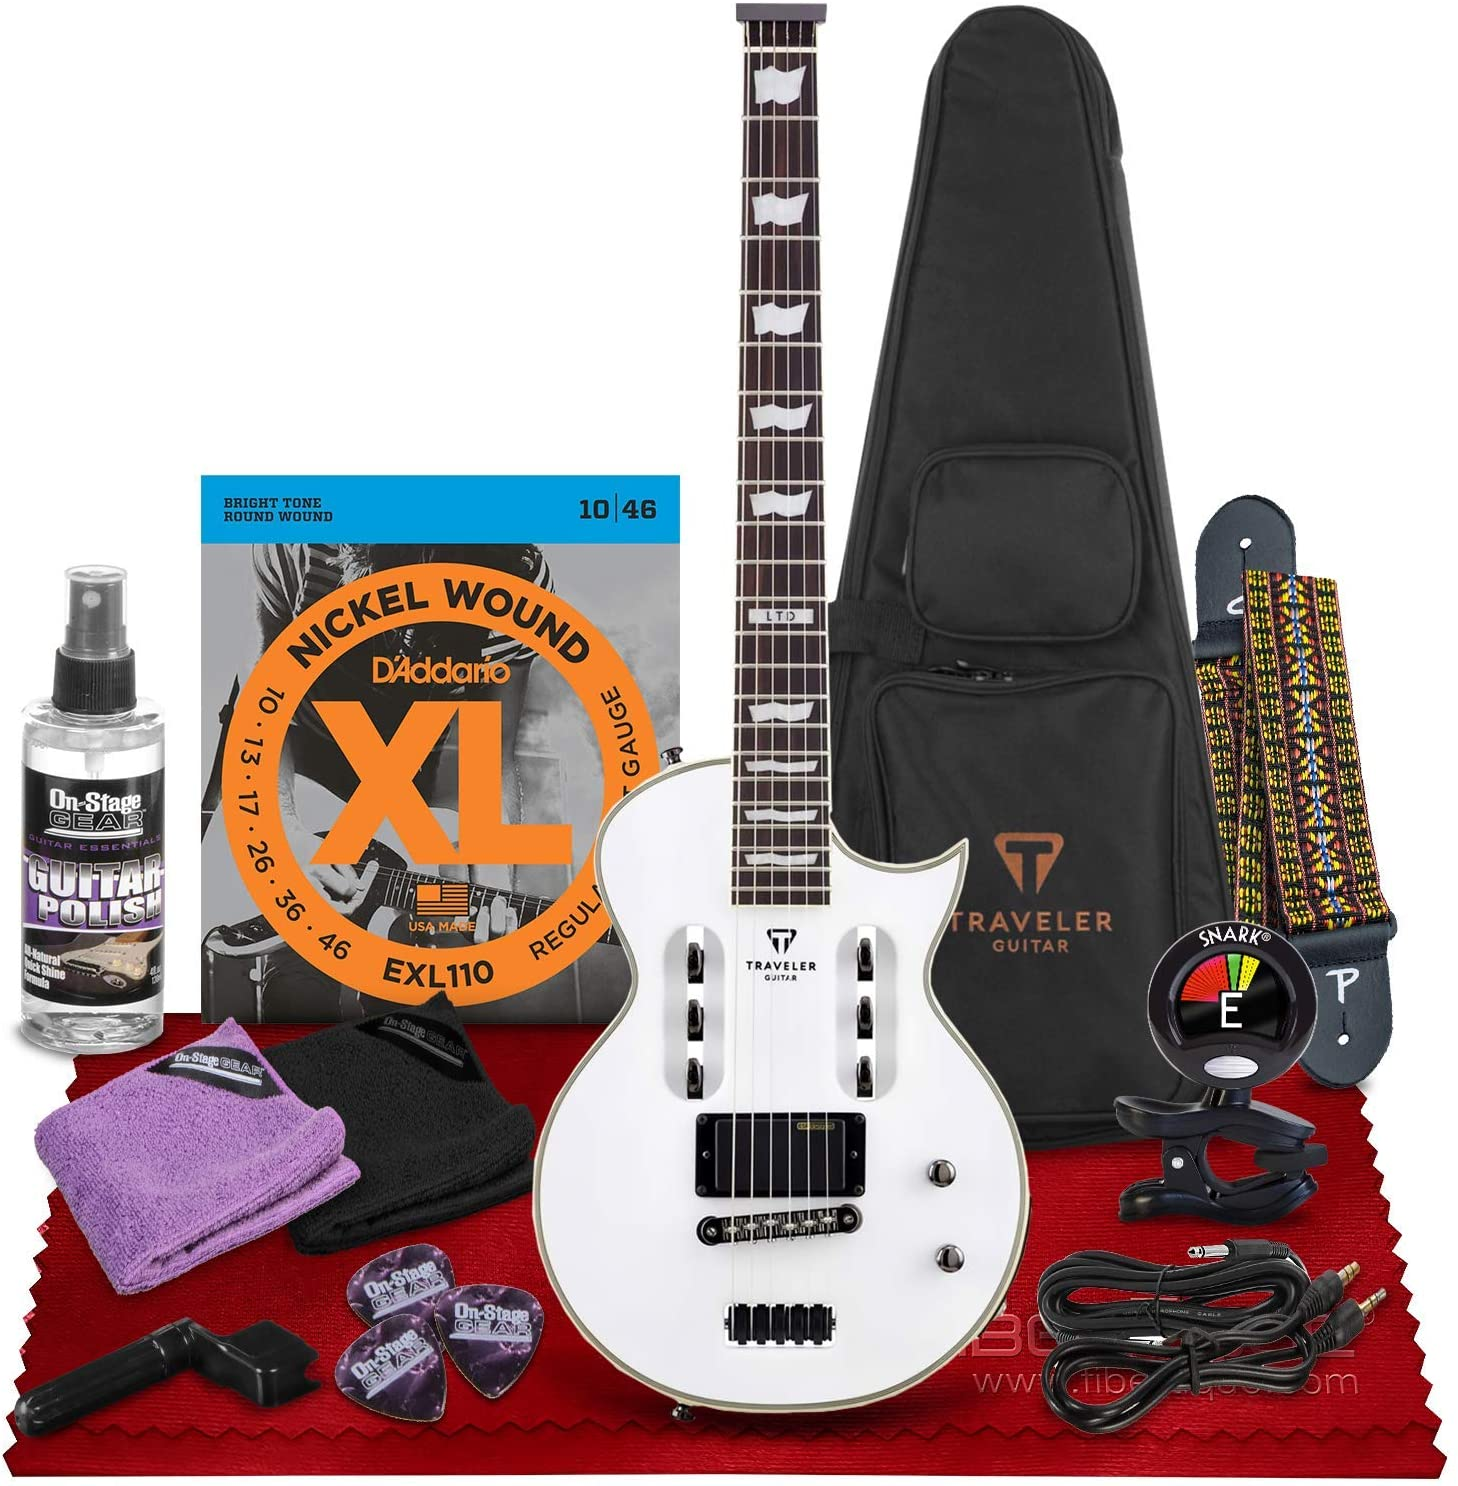 Traveler Guitar LTD EC-1 Electric Guitar (Snow White) (EC1 SWTG)+ Clip-On 360° Rotating Tuner, Guitar Strap, Strings, Universal Guitar Care Accessories, Cable Kit, and Fibertique Cleaning Cloth